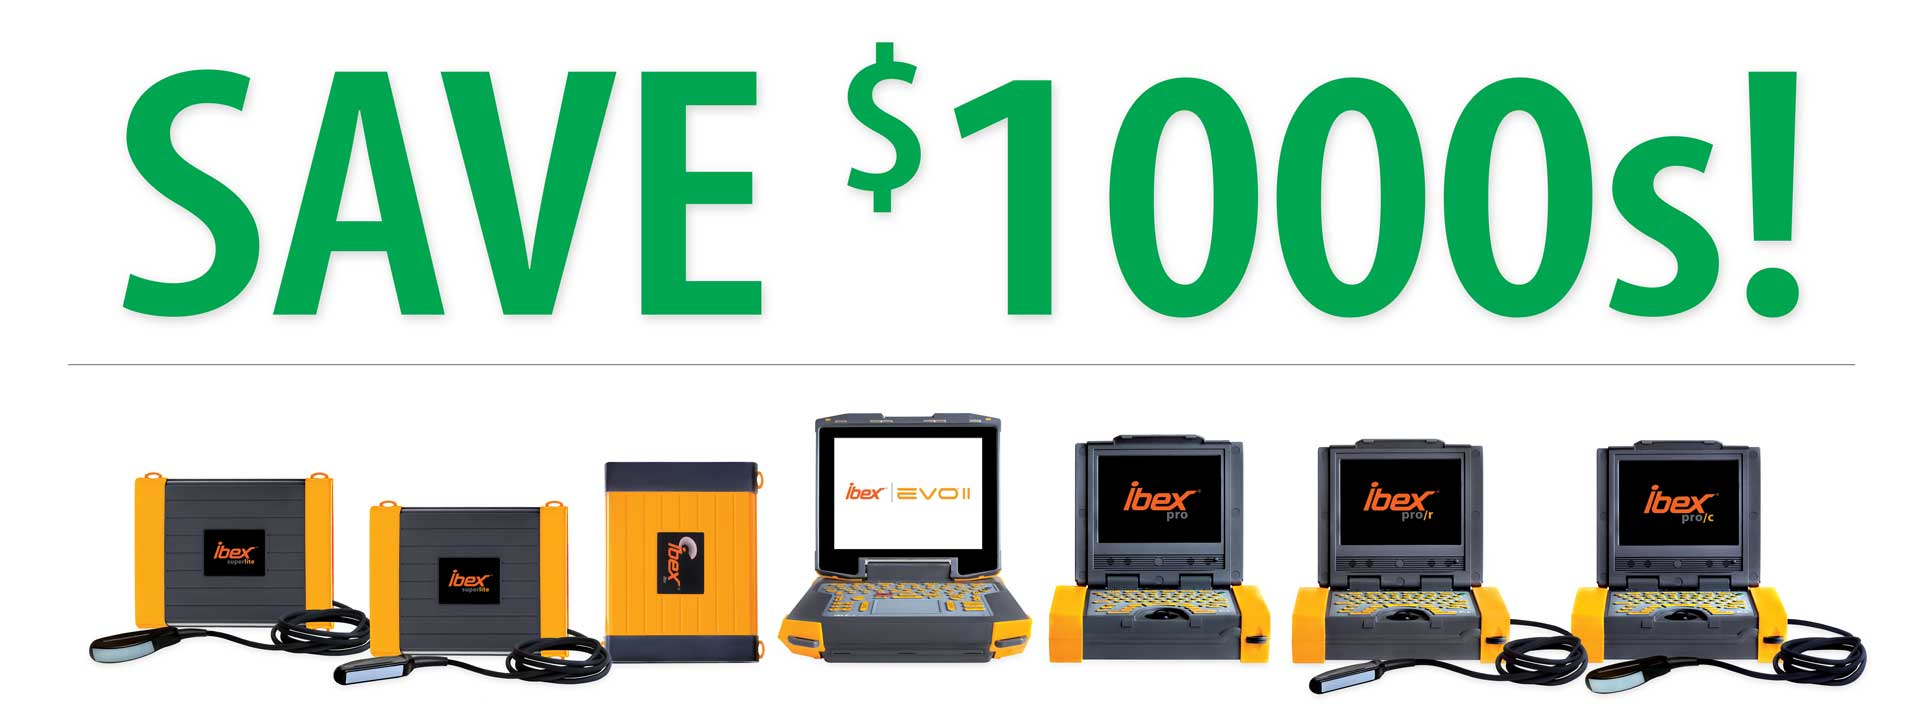 Spring 2021—save $1000s now